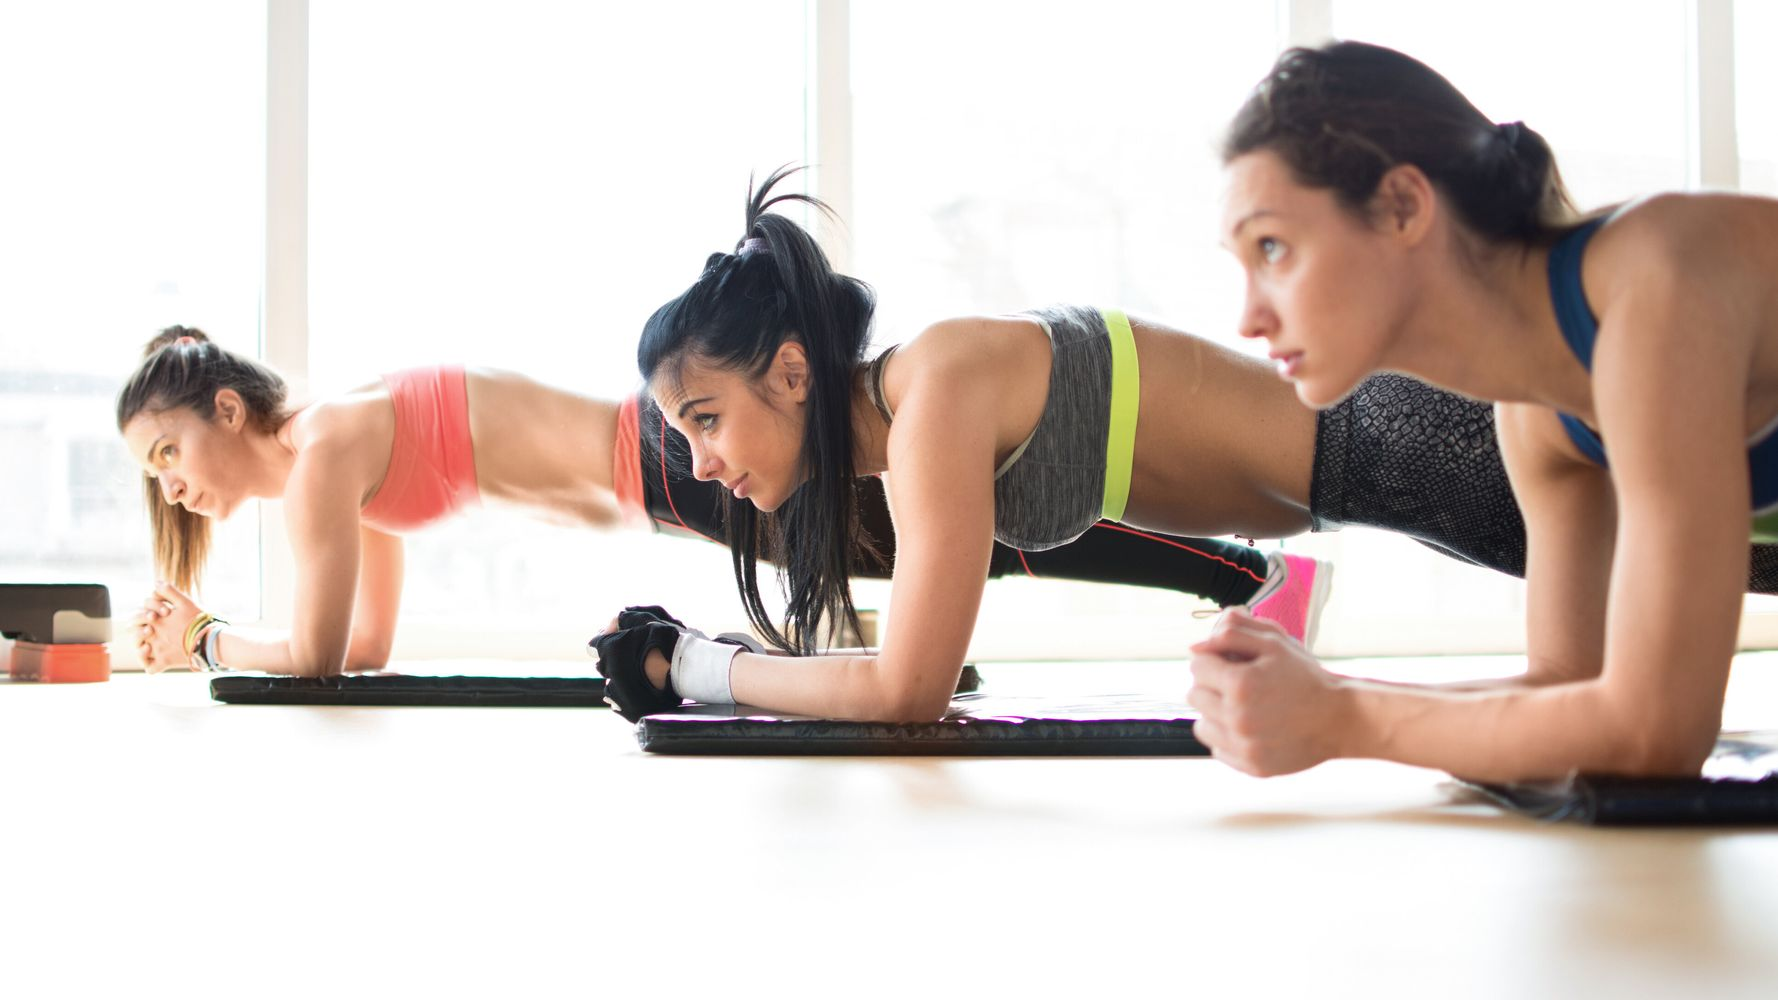 16 Inspiring Health And Fitness Quotes To Help You Stay On Track Huffpost Australia Food Drink